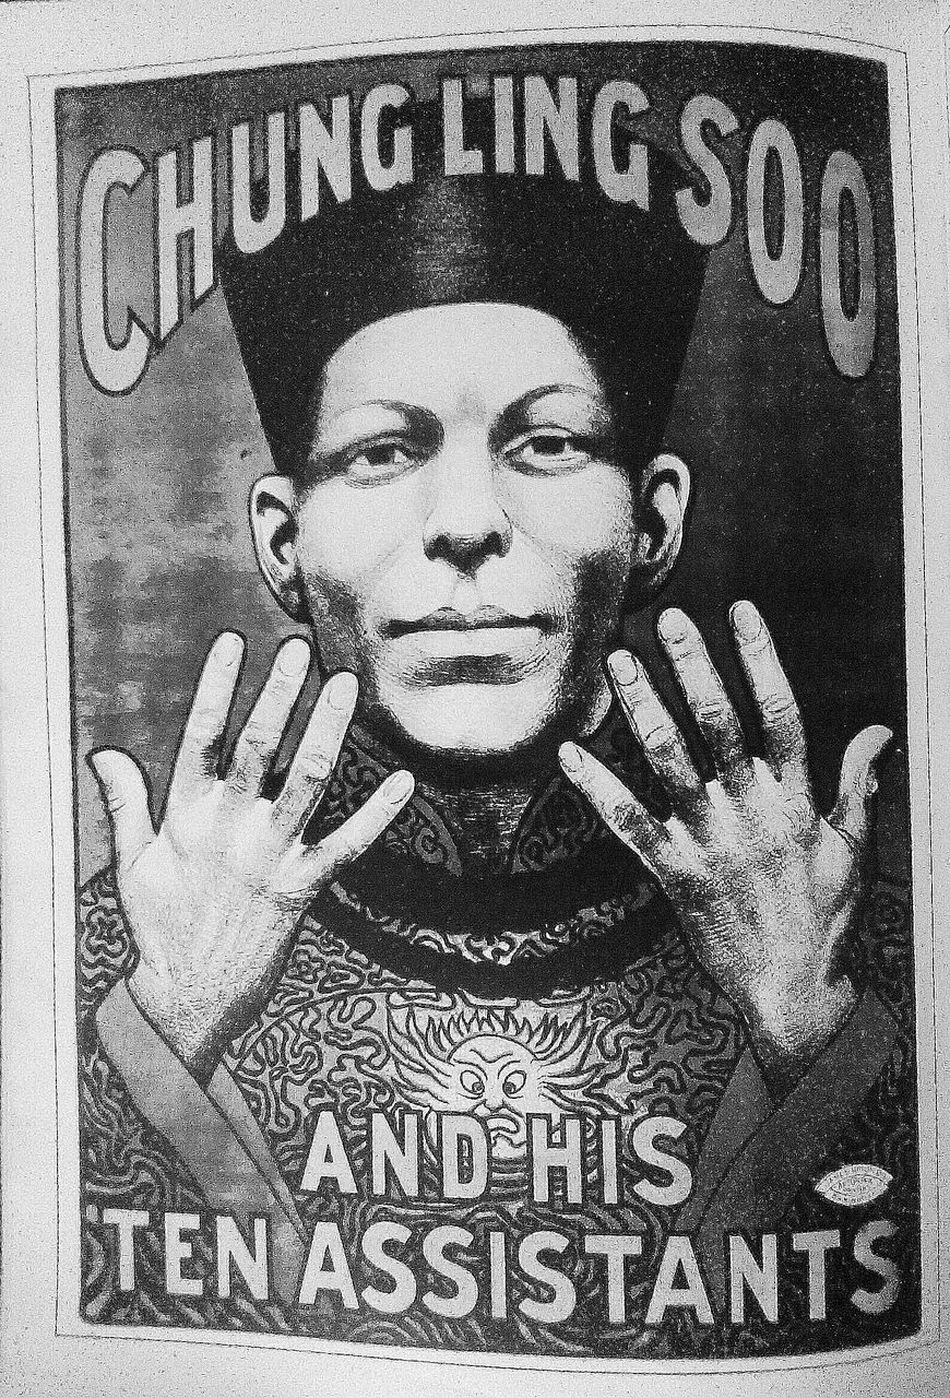 ChungLingSoo Chung Ling Soo Ten Fingers Ten Assistants Blackandwhite Black And White Black&white Black & White Poster Posters Oldposter Poster Collection Old Poster Oldposters Postercollection Posterporn Old Posters Hands Show Me Your Hands How Many Fingers Do U Count? Fingers Tenfingers Eight Fingers & Two Thumbs Hands Of A Man Hands Up